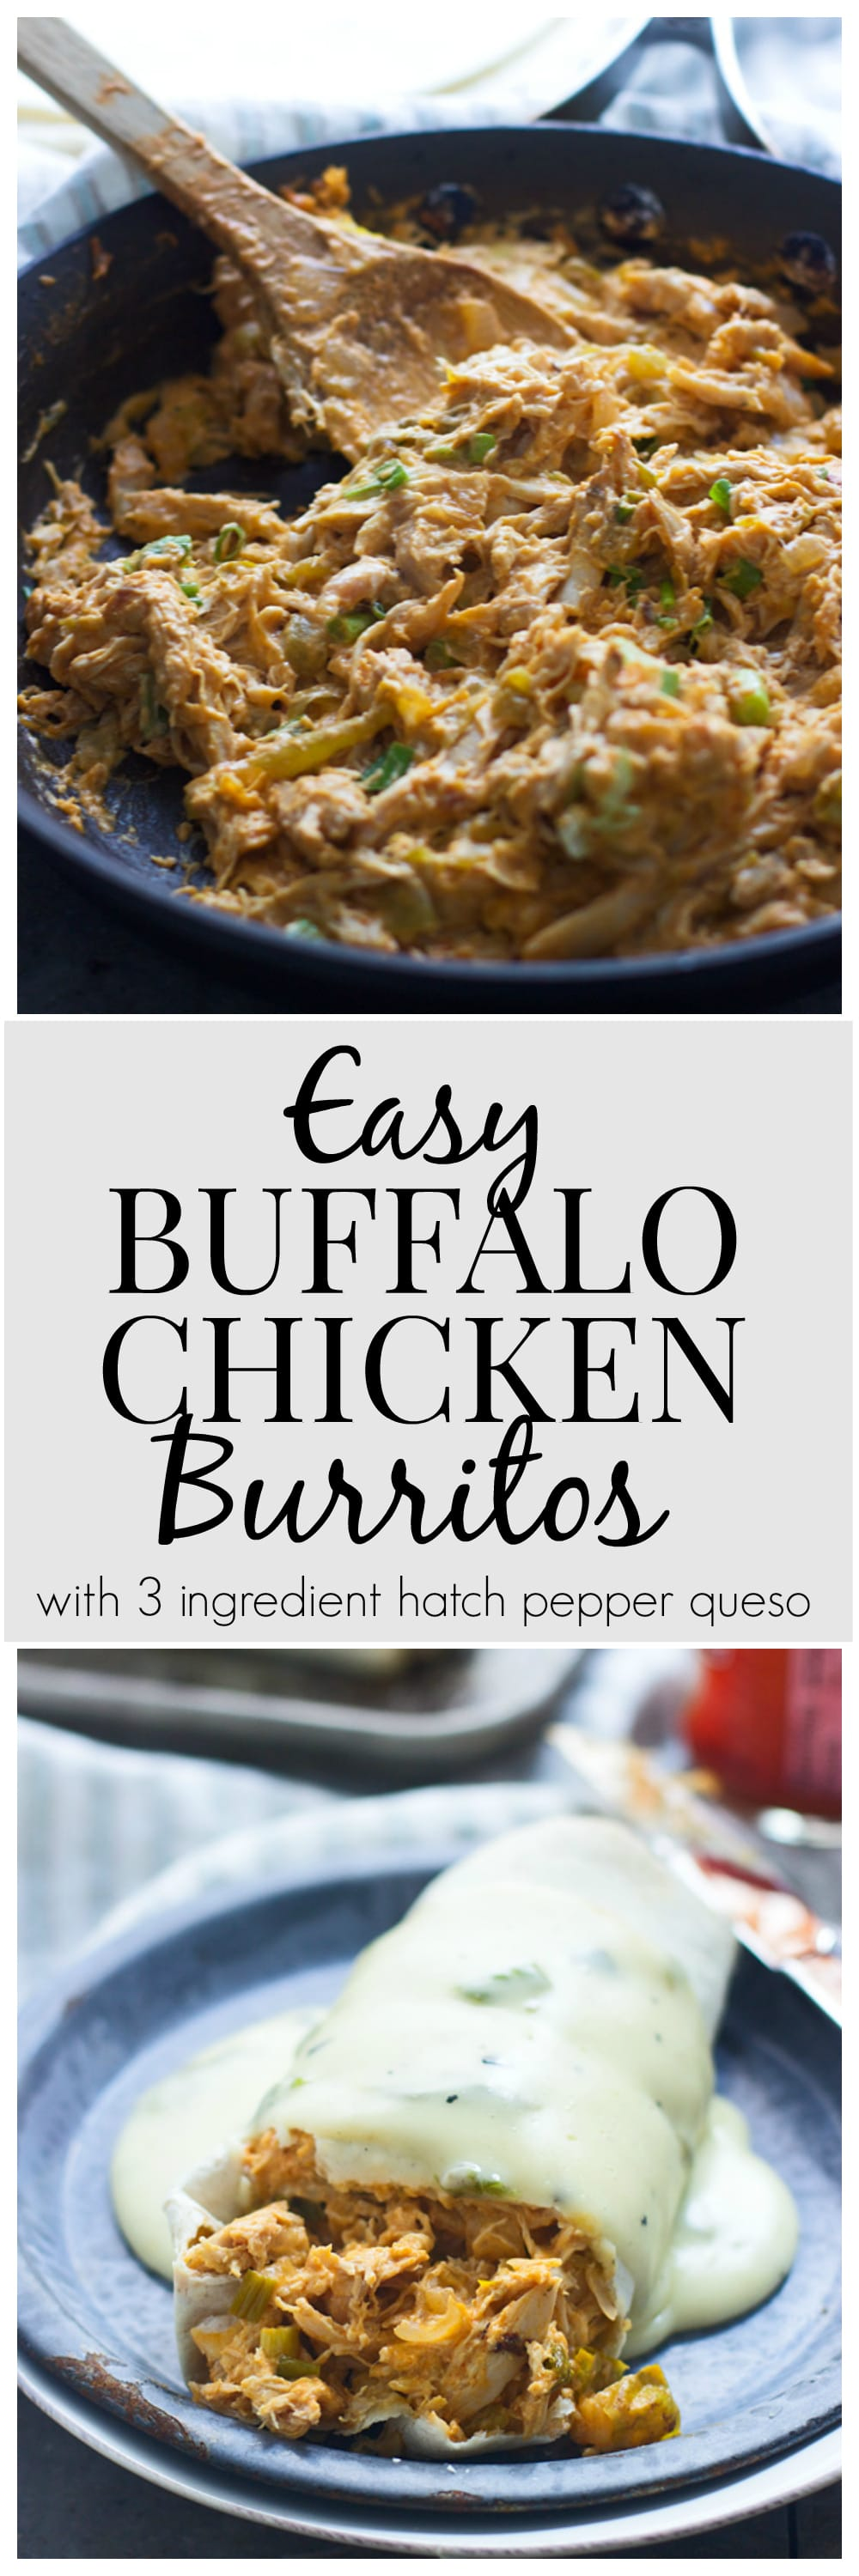 Easy Buffalo Chicken Burritos with Three Ingredient Hatch Pepper Queso